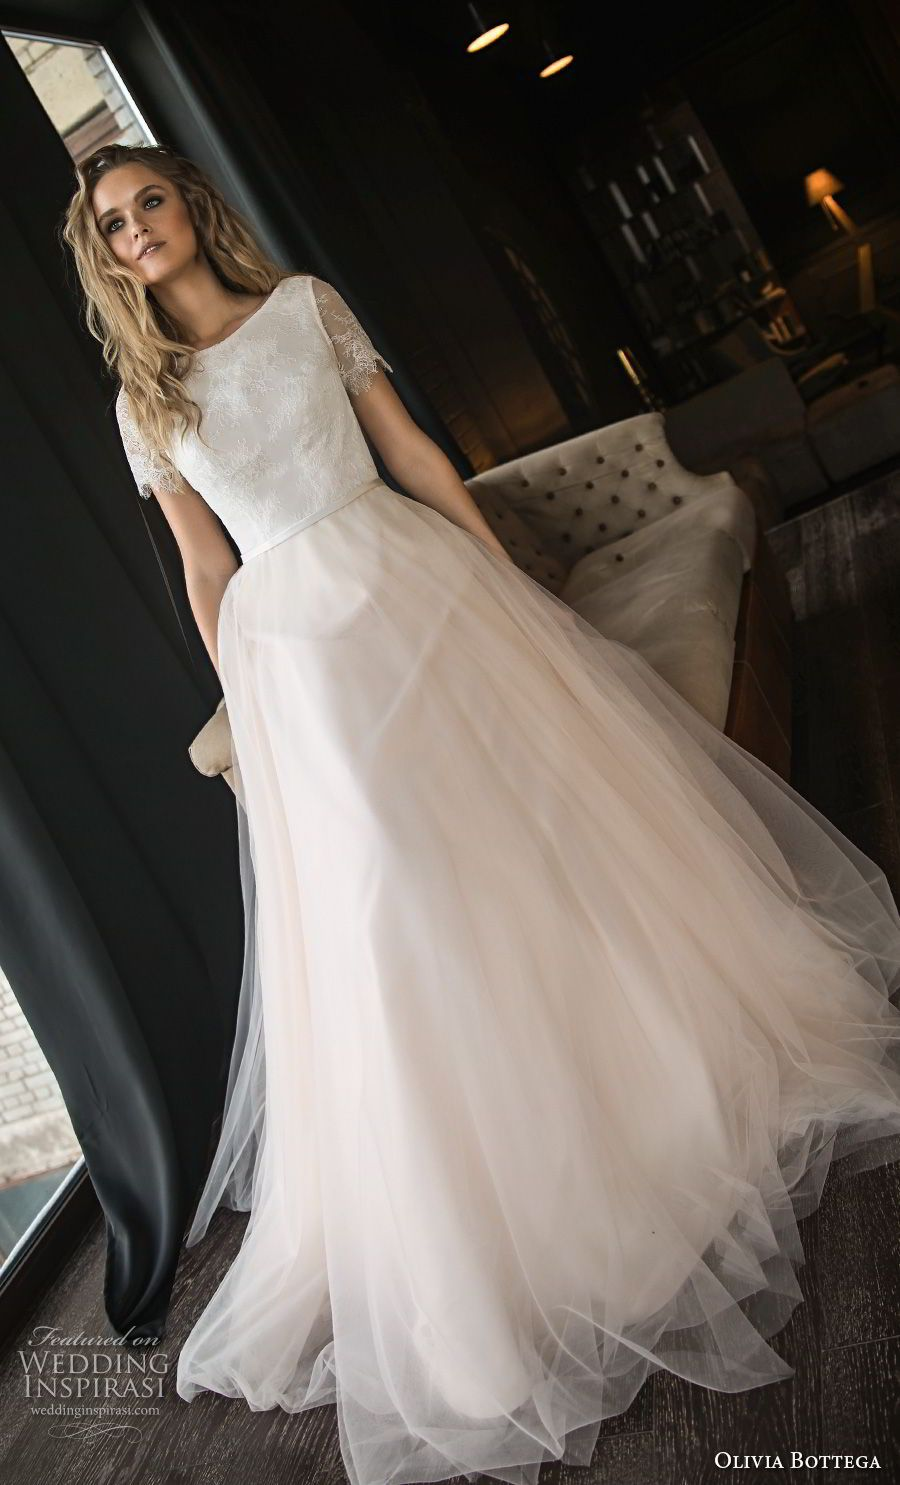 Olivia bottega wedding dresses e t e r n i t y